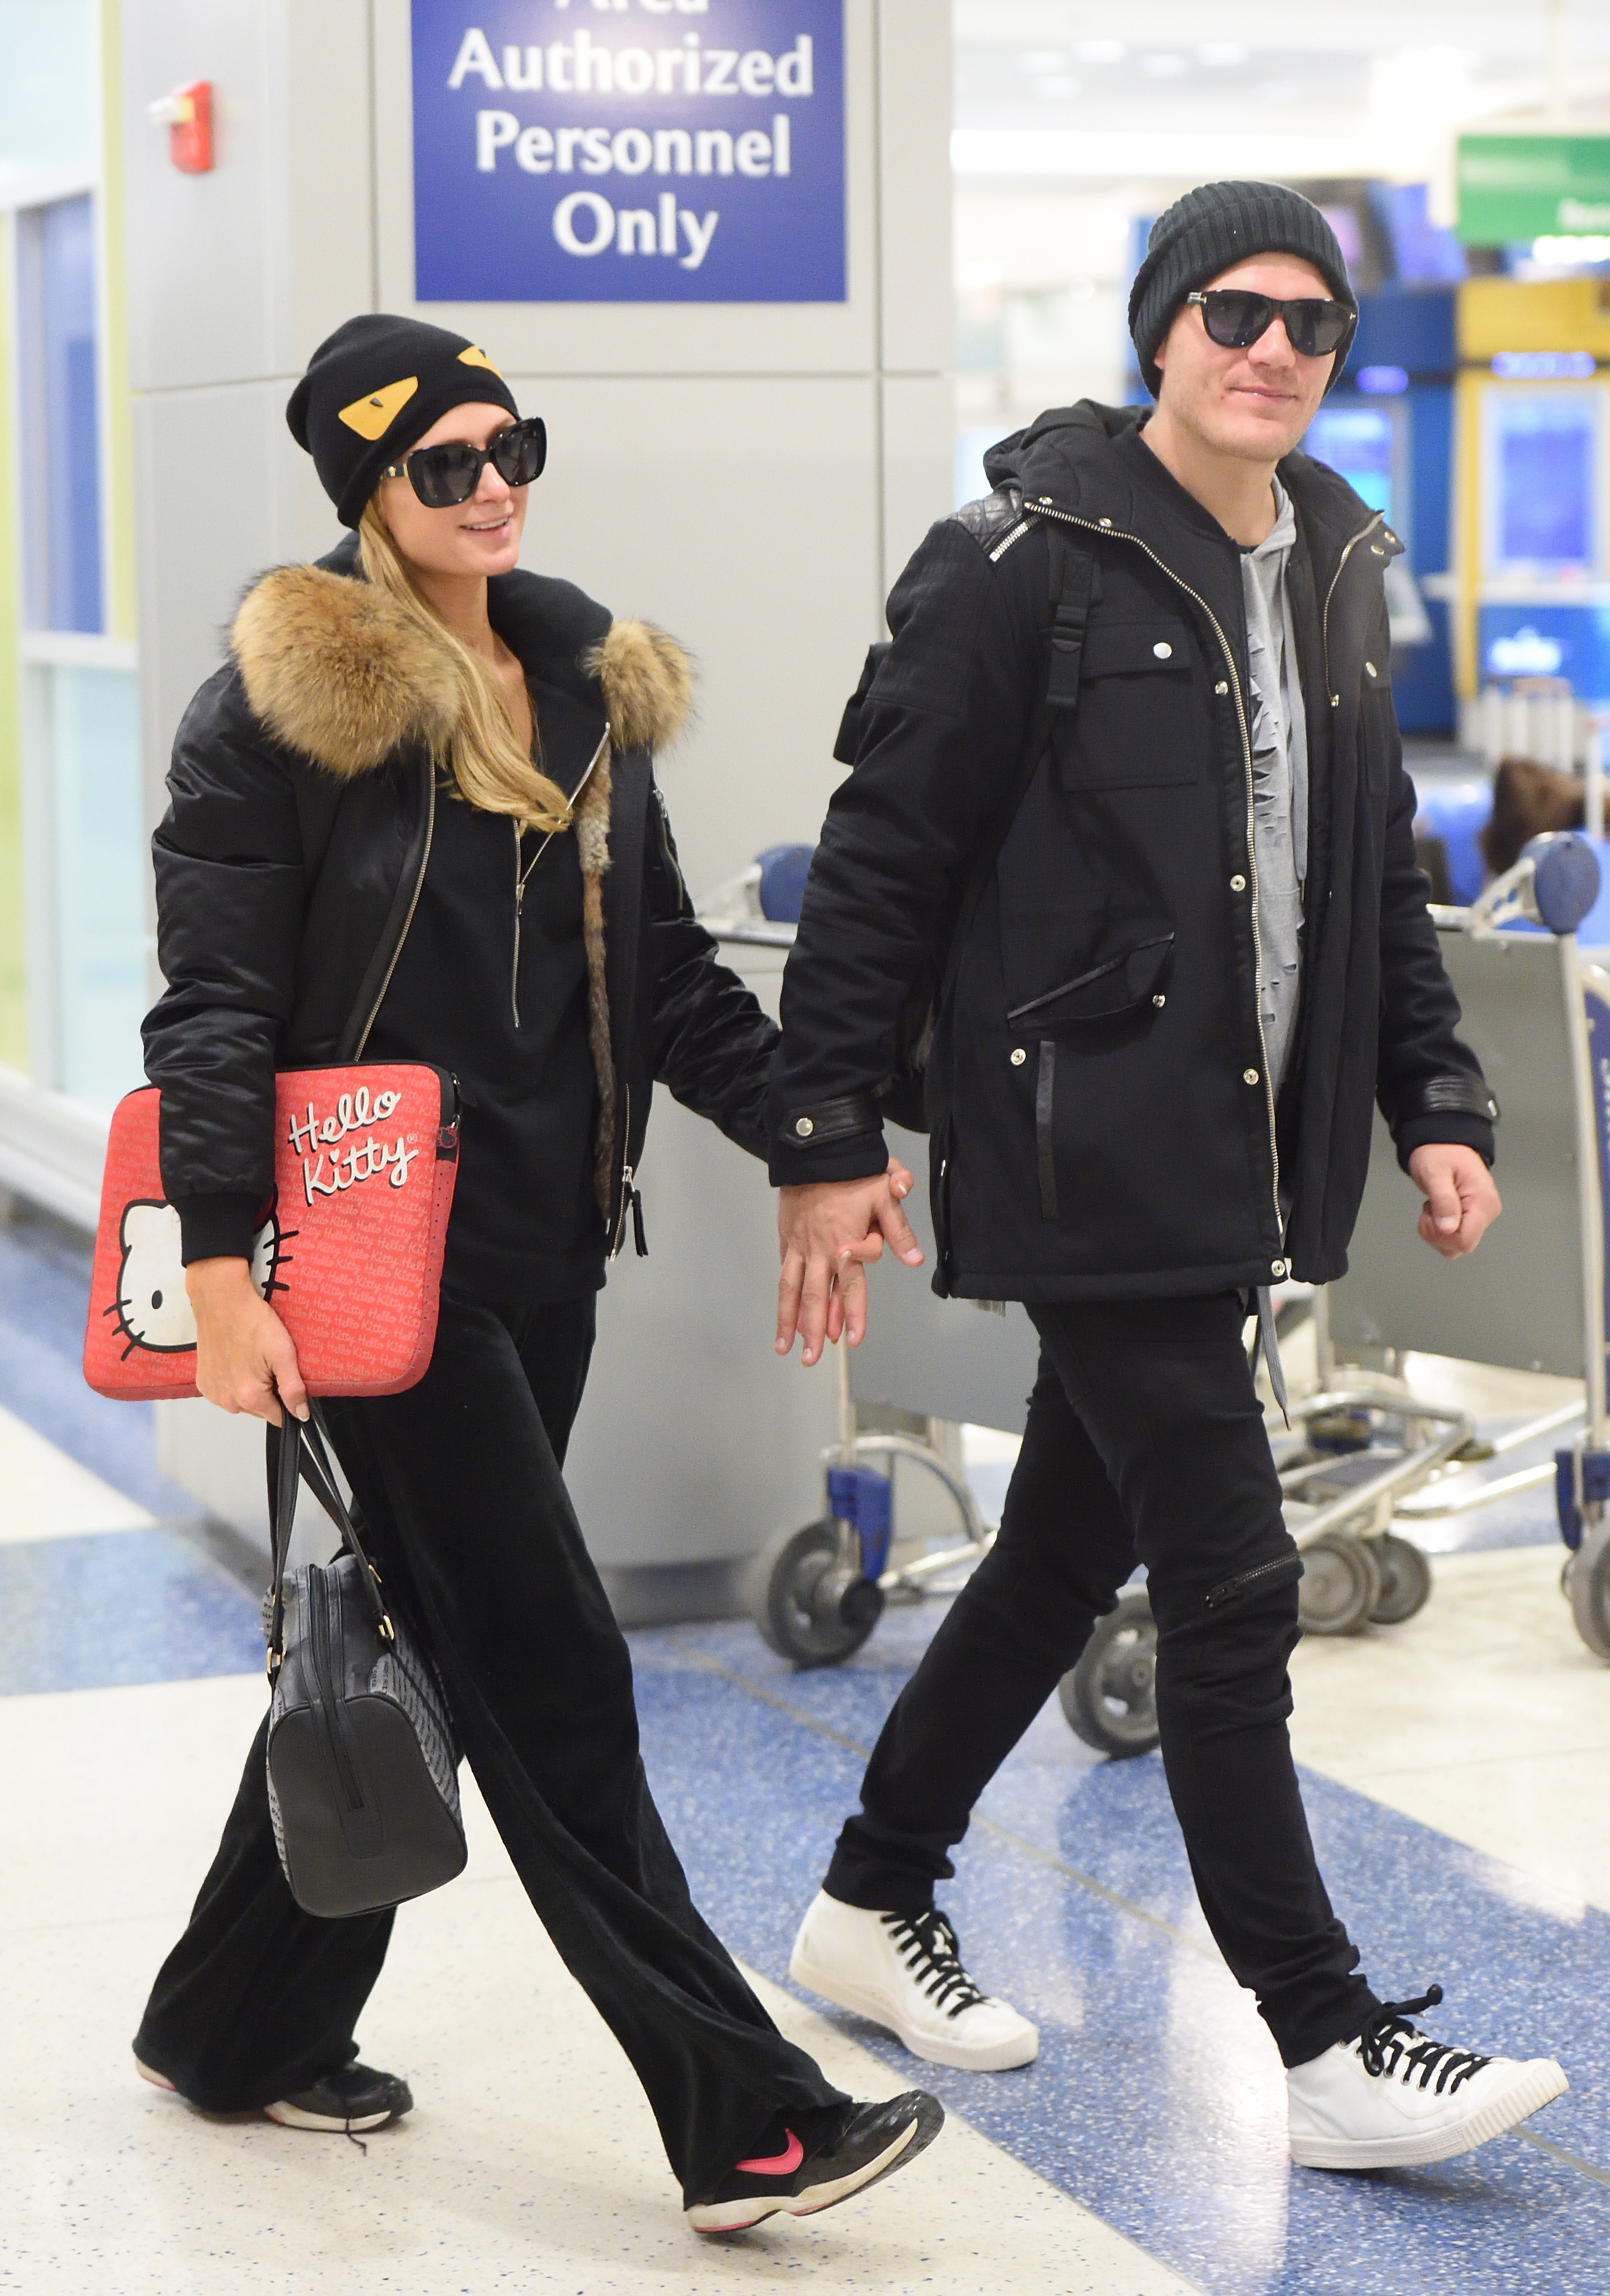 EXCLUSIVE: Paris Hilton with boyfriend Chris Zylka arrive hand in hand at JFK airport in NYC. <P> Pictured: Paris Hilton and Chris Zylka <B>Ref: SPL1638717  201217   EXCLUSIVE</B><BR/> Picture by: Ron Asadorian / Splash News<BR/> </P><P> <B>Splash News and Pictures</B><BR/> Los Angeles:310-821-2666<BR/> New York:212-619-2666<BR/> London:870-934-2666<BR/> <span id=